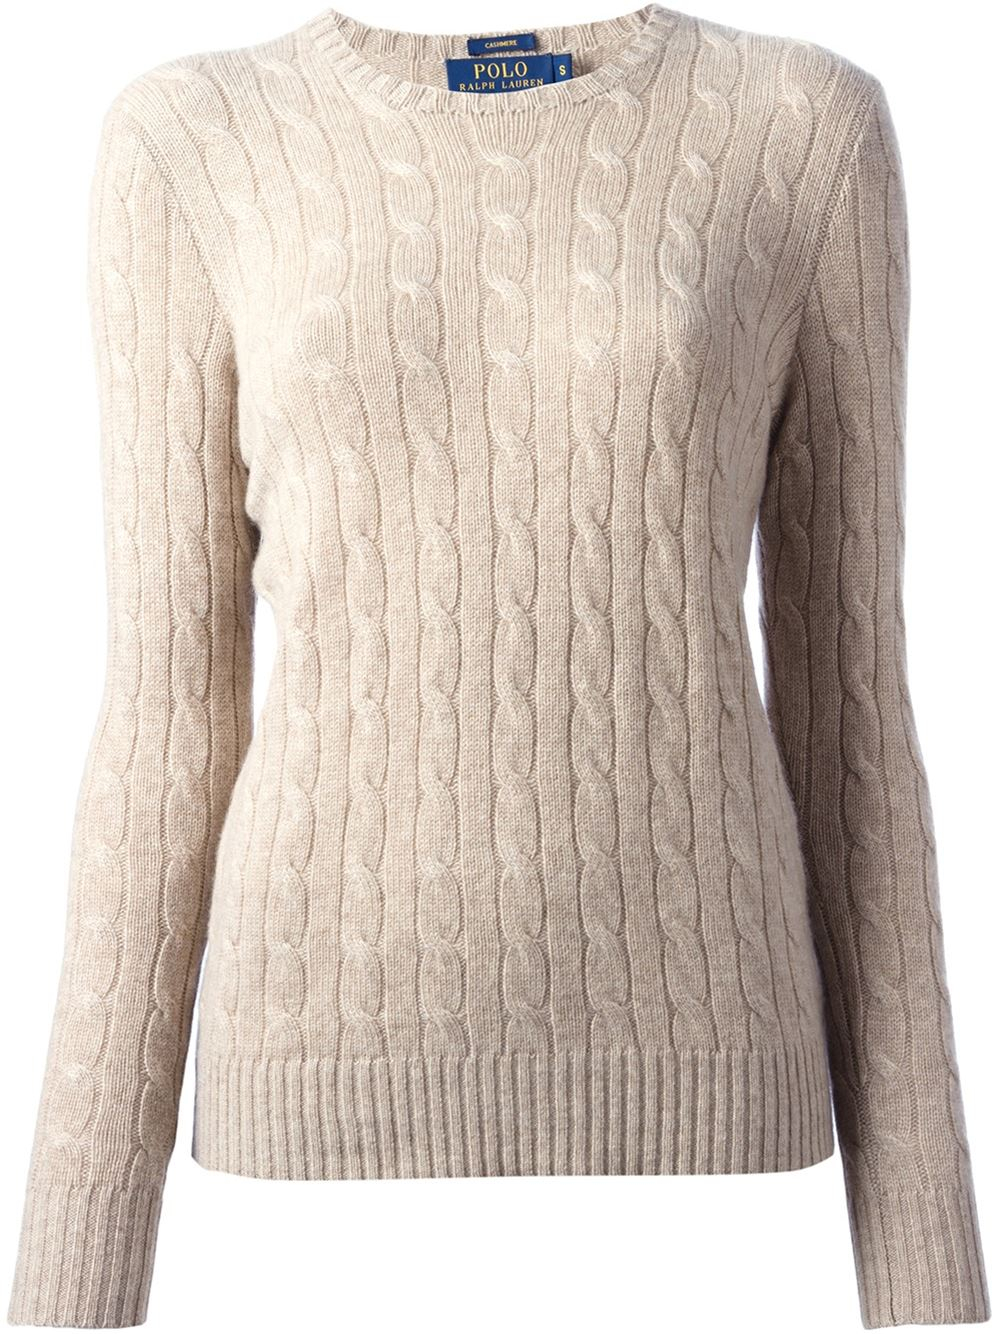 Lyst Polo Ralph Lauren Cable Knit Sweater In Natural